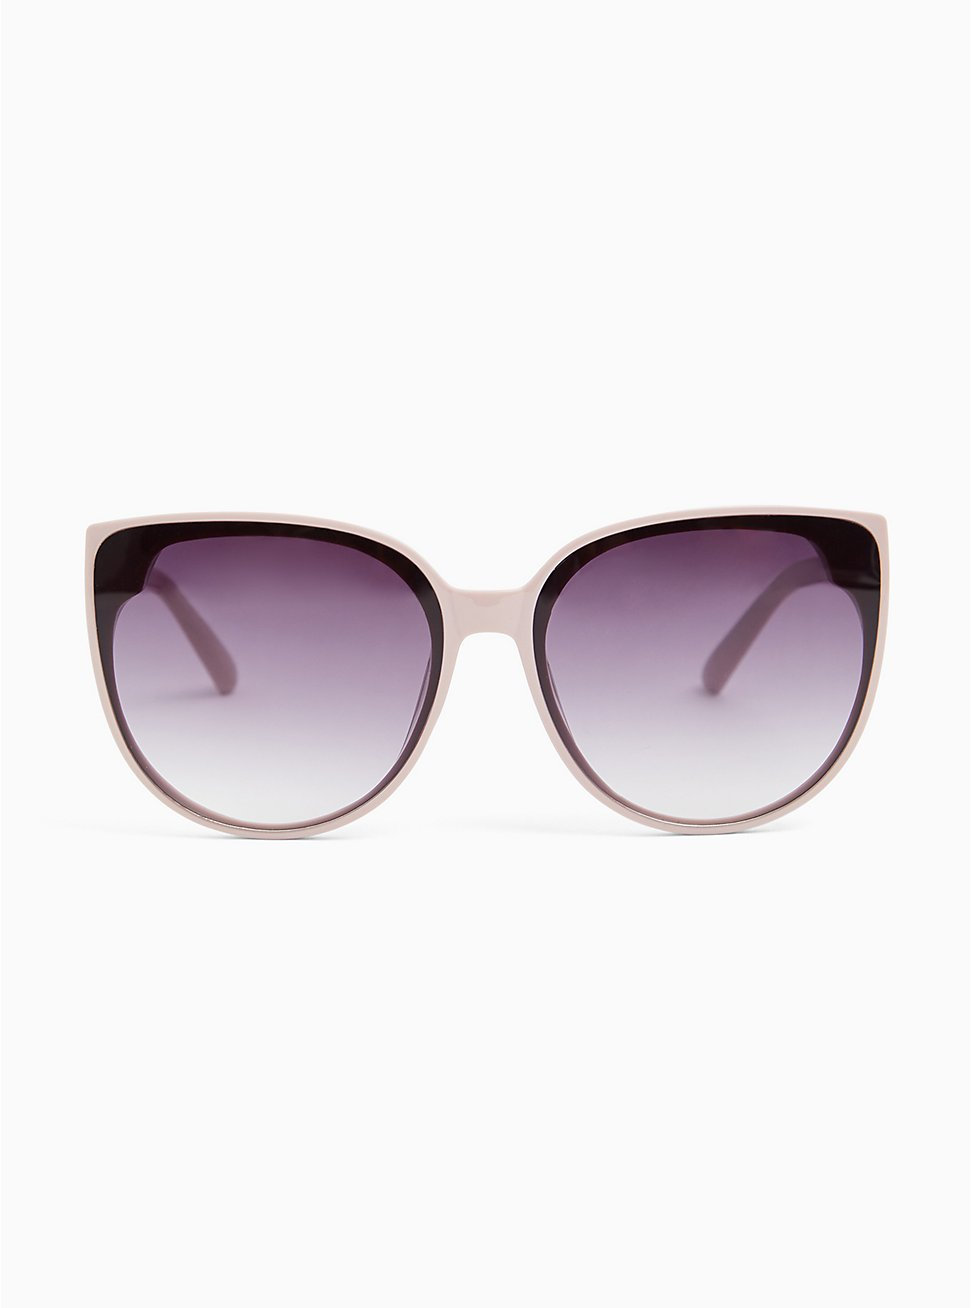 Light Pink & Black Cat Eye Sunglasses, , hi-res